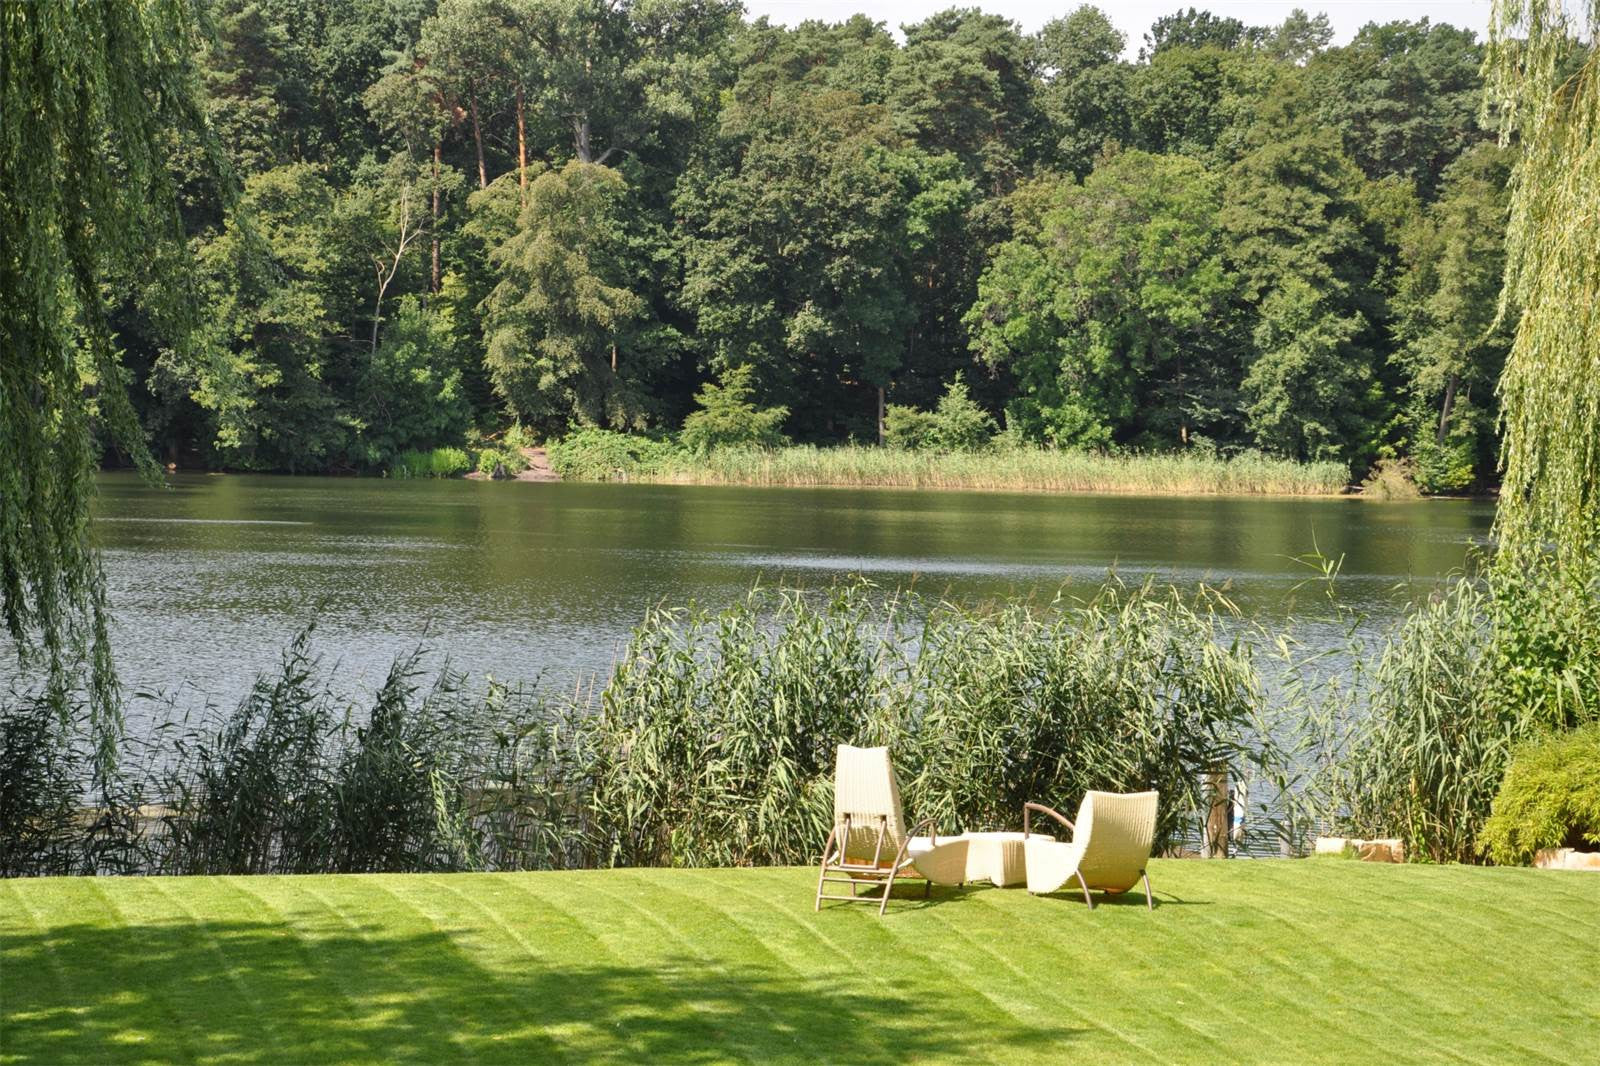 11 BED VILLA WITH IMPRESSIVE LAKE VIEWS, BERLIN, GERMANY